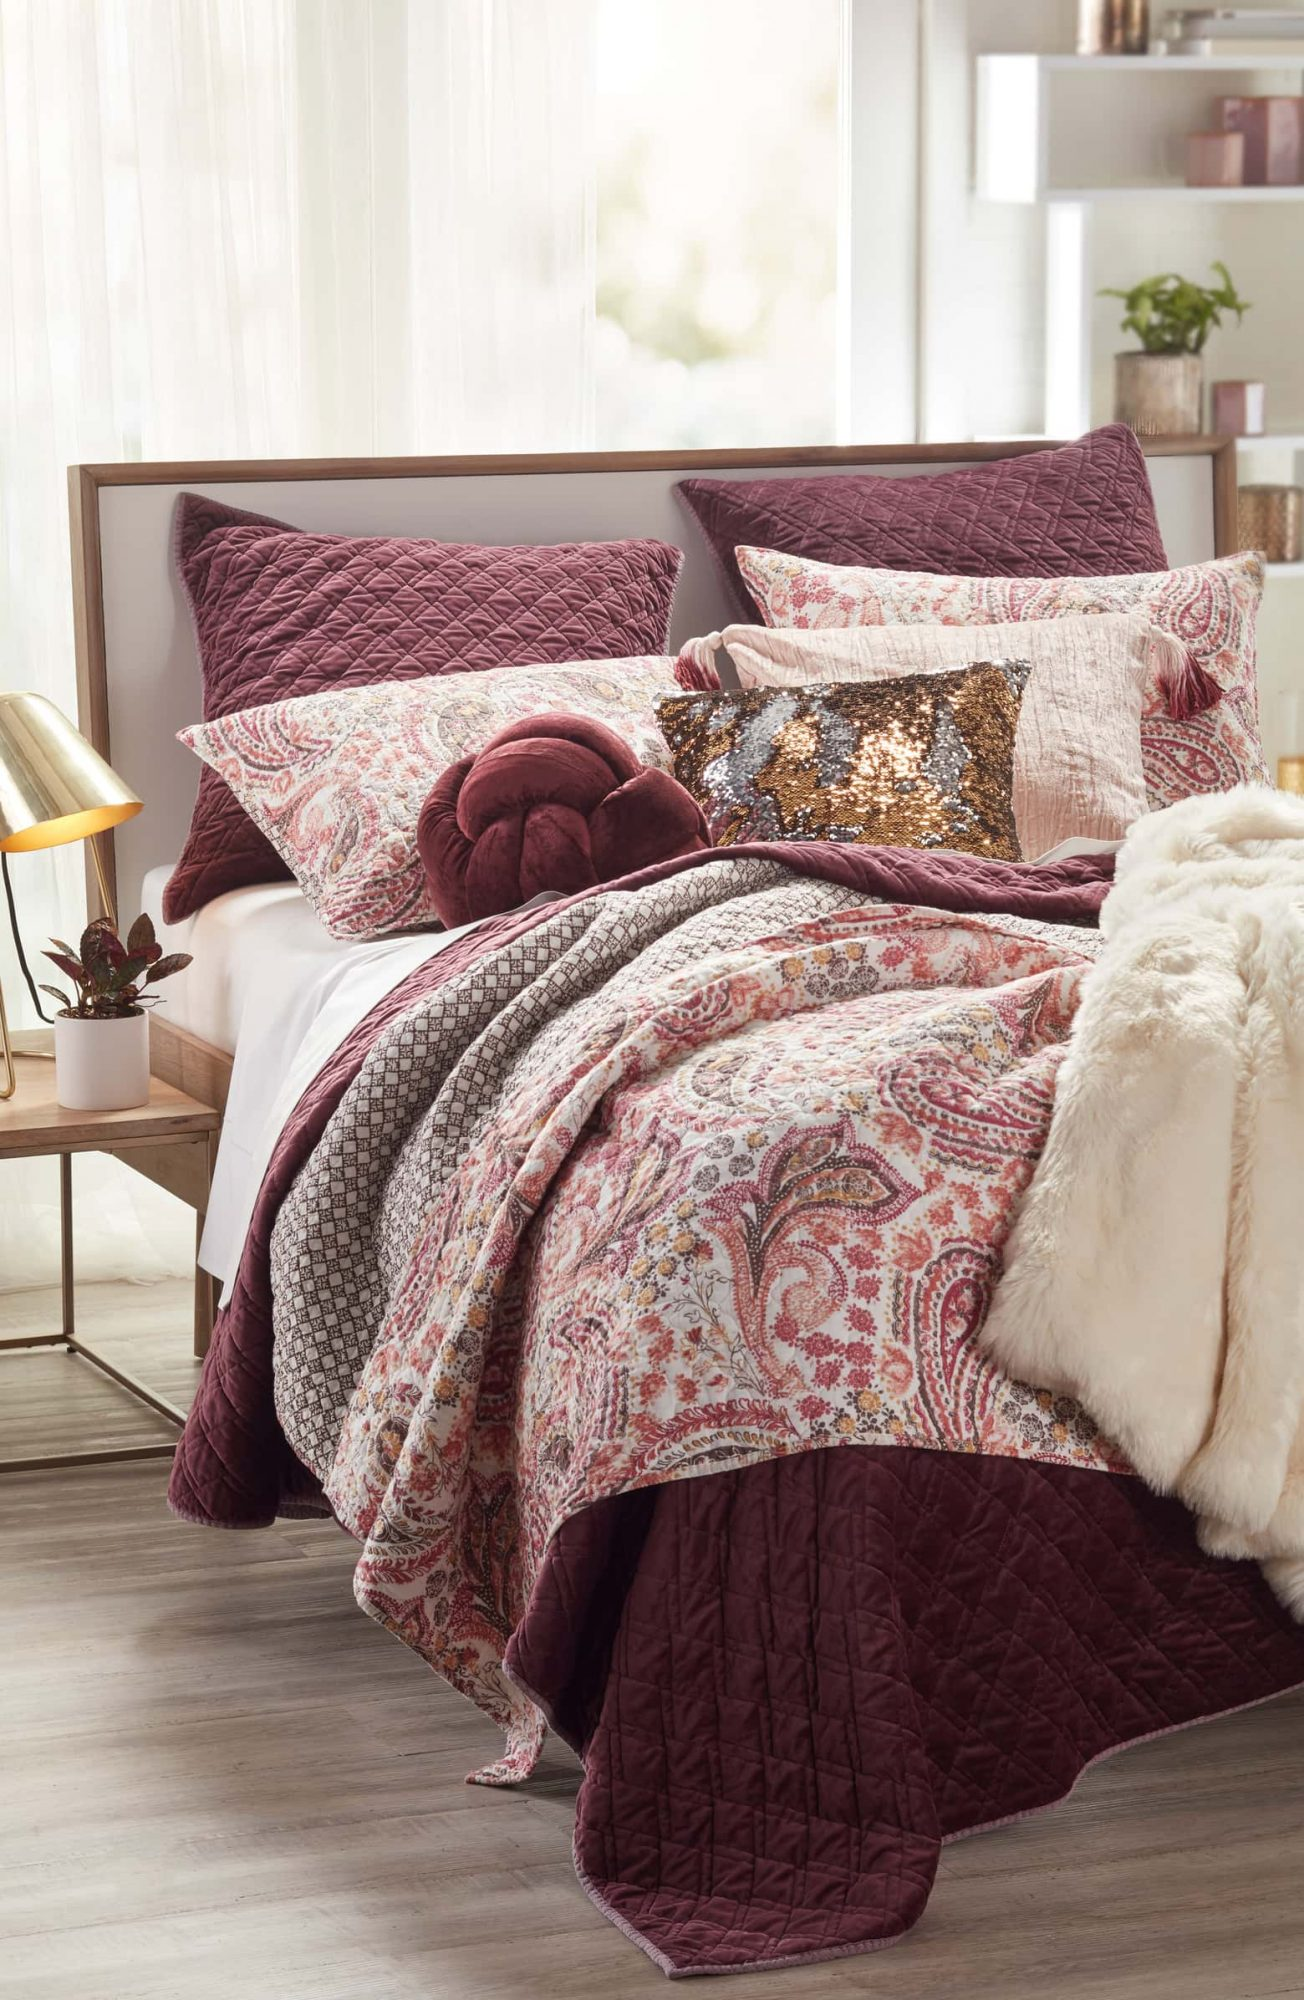 Nordstrom Winter Sale on home